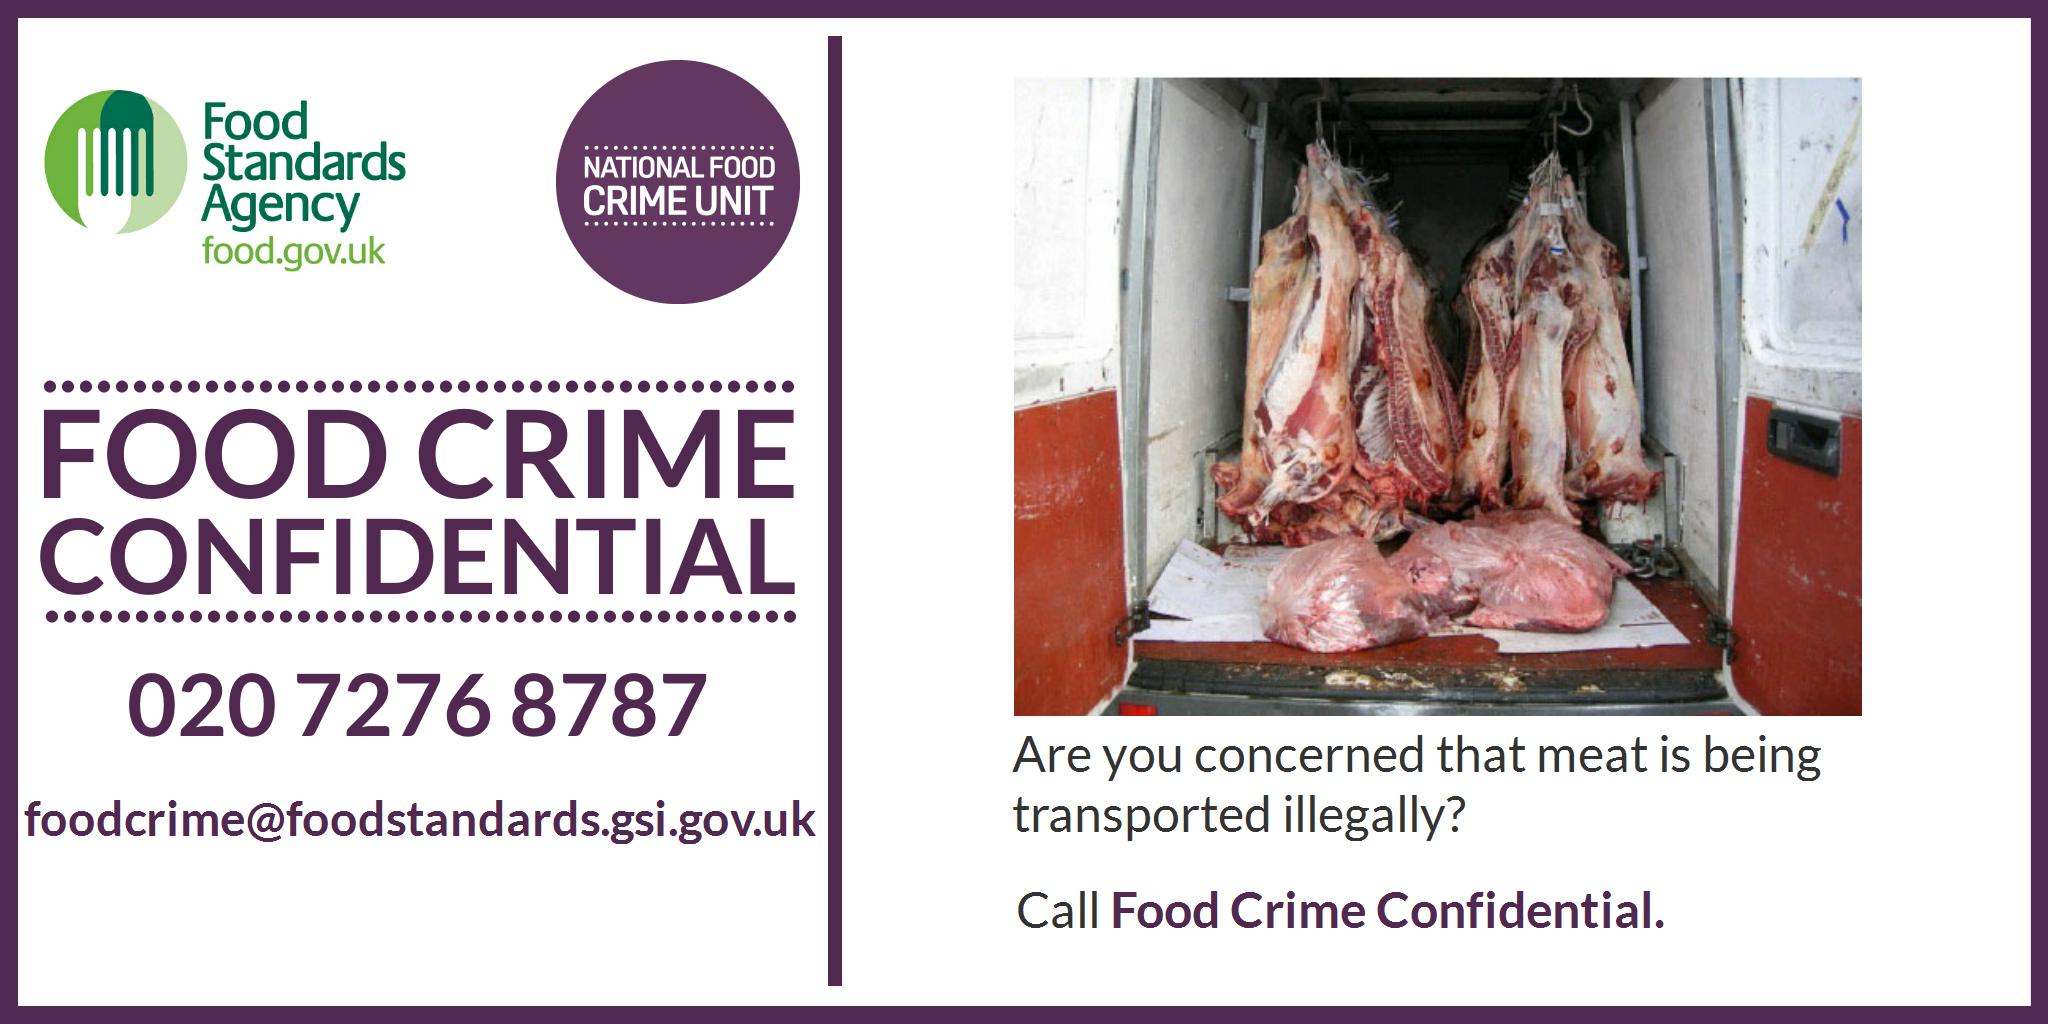 Food Standards Agency Food Crime Confidential campaign